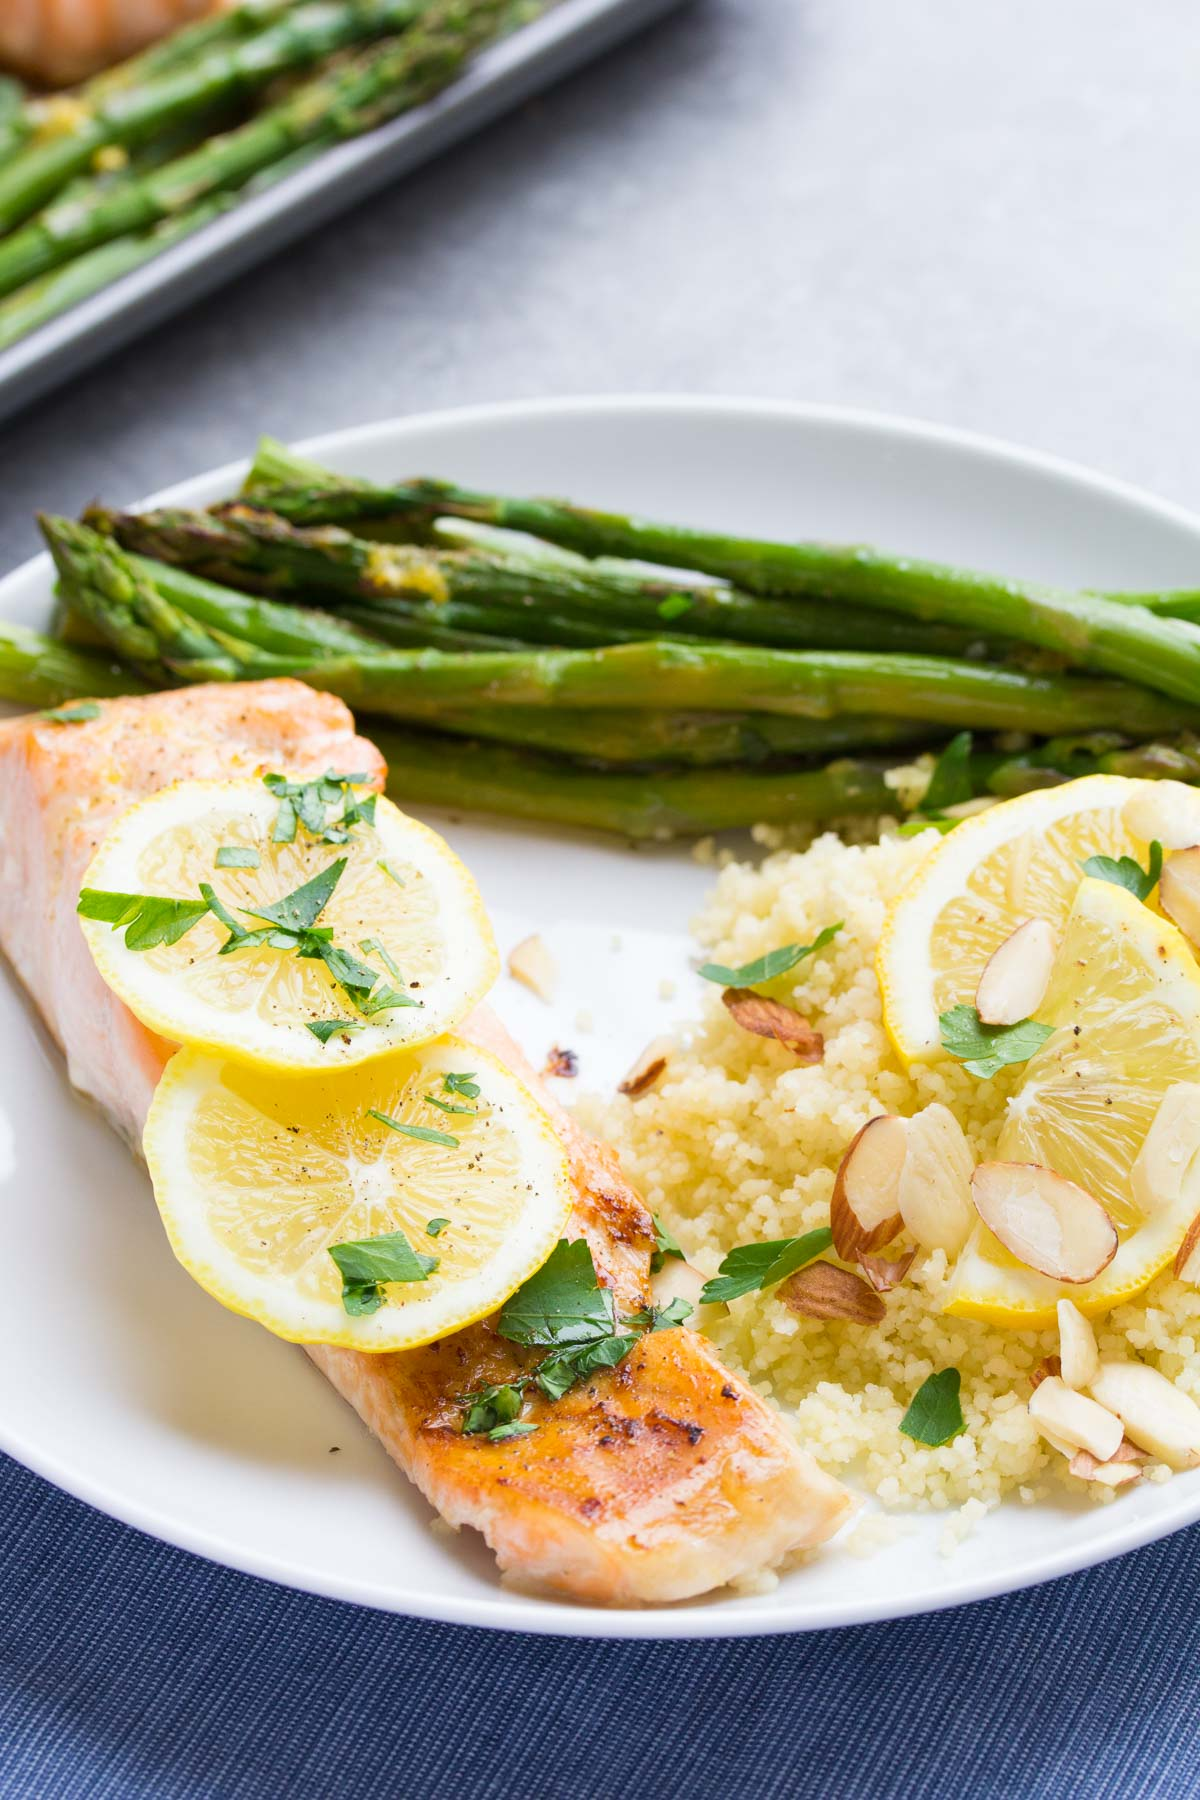 lemon garlic salmon with asparagus and couscous ready to eat on a white plate topped with lemon slices